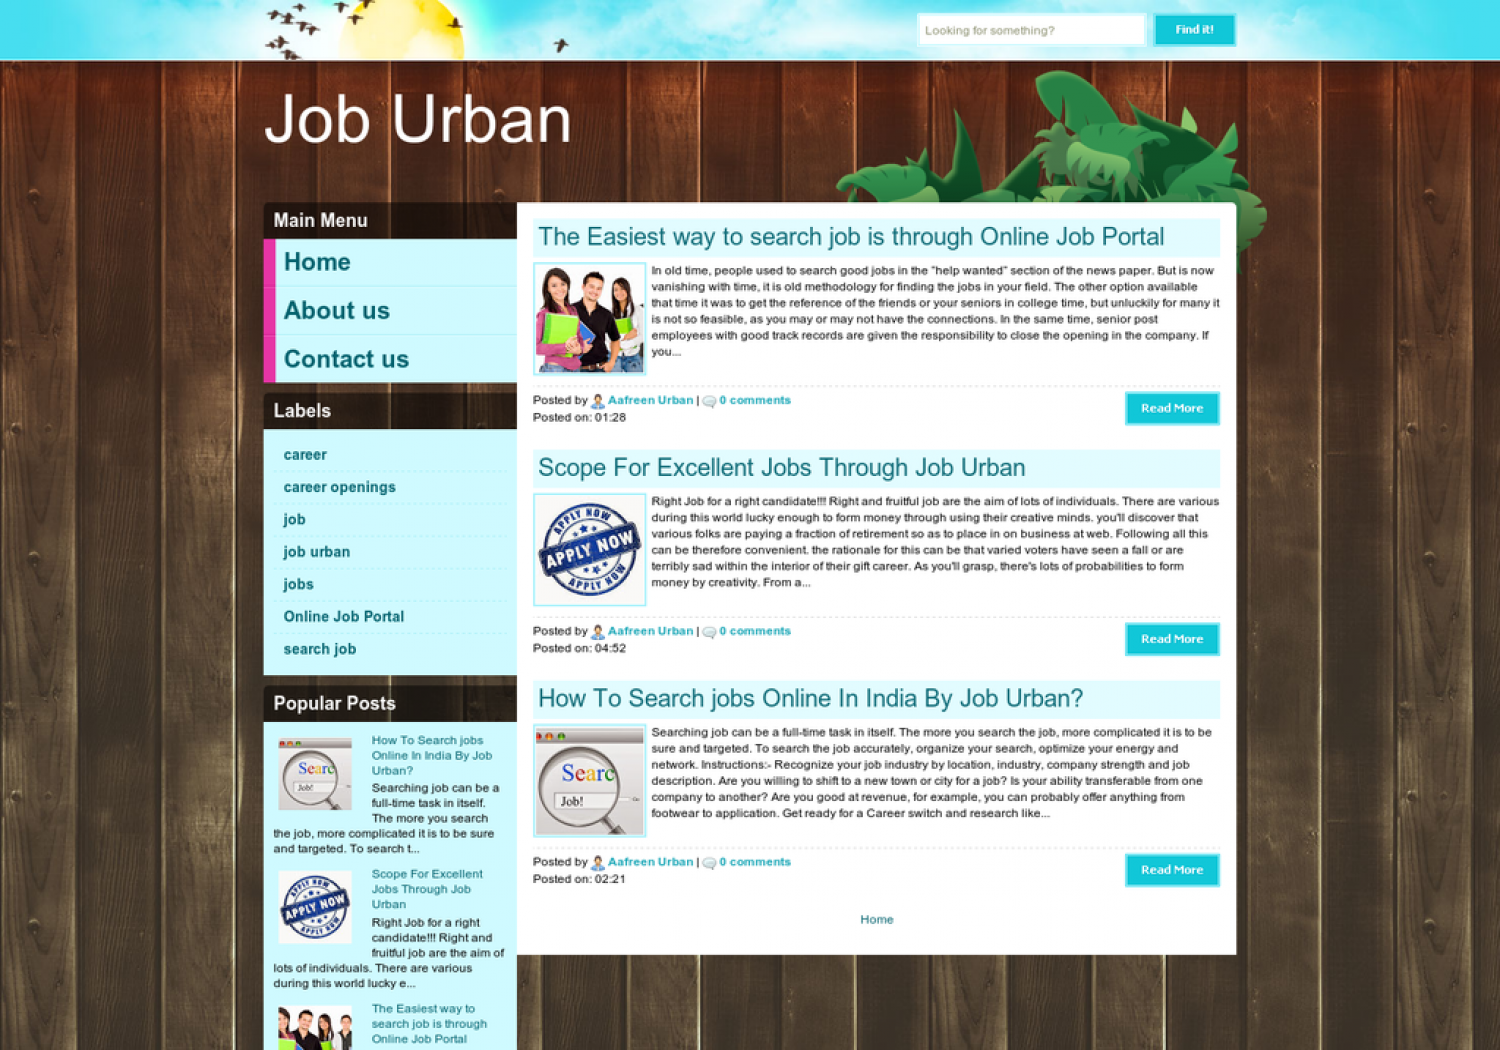 The Easiest way to search job is through Online Job Portal Infographic